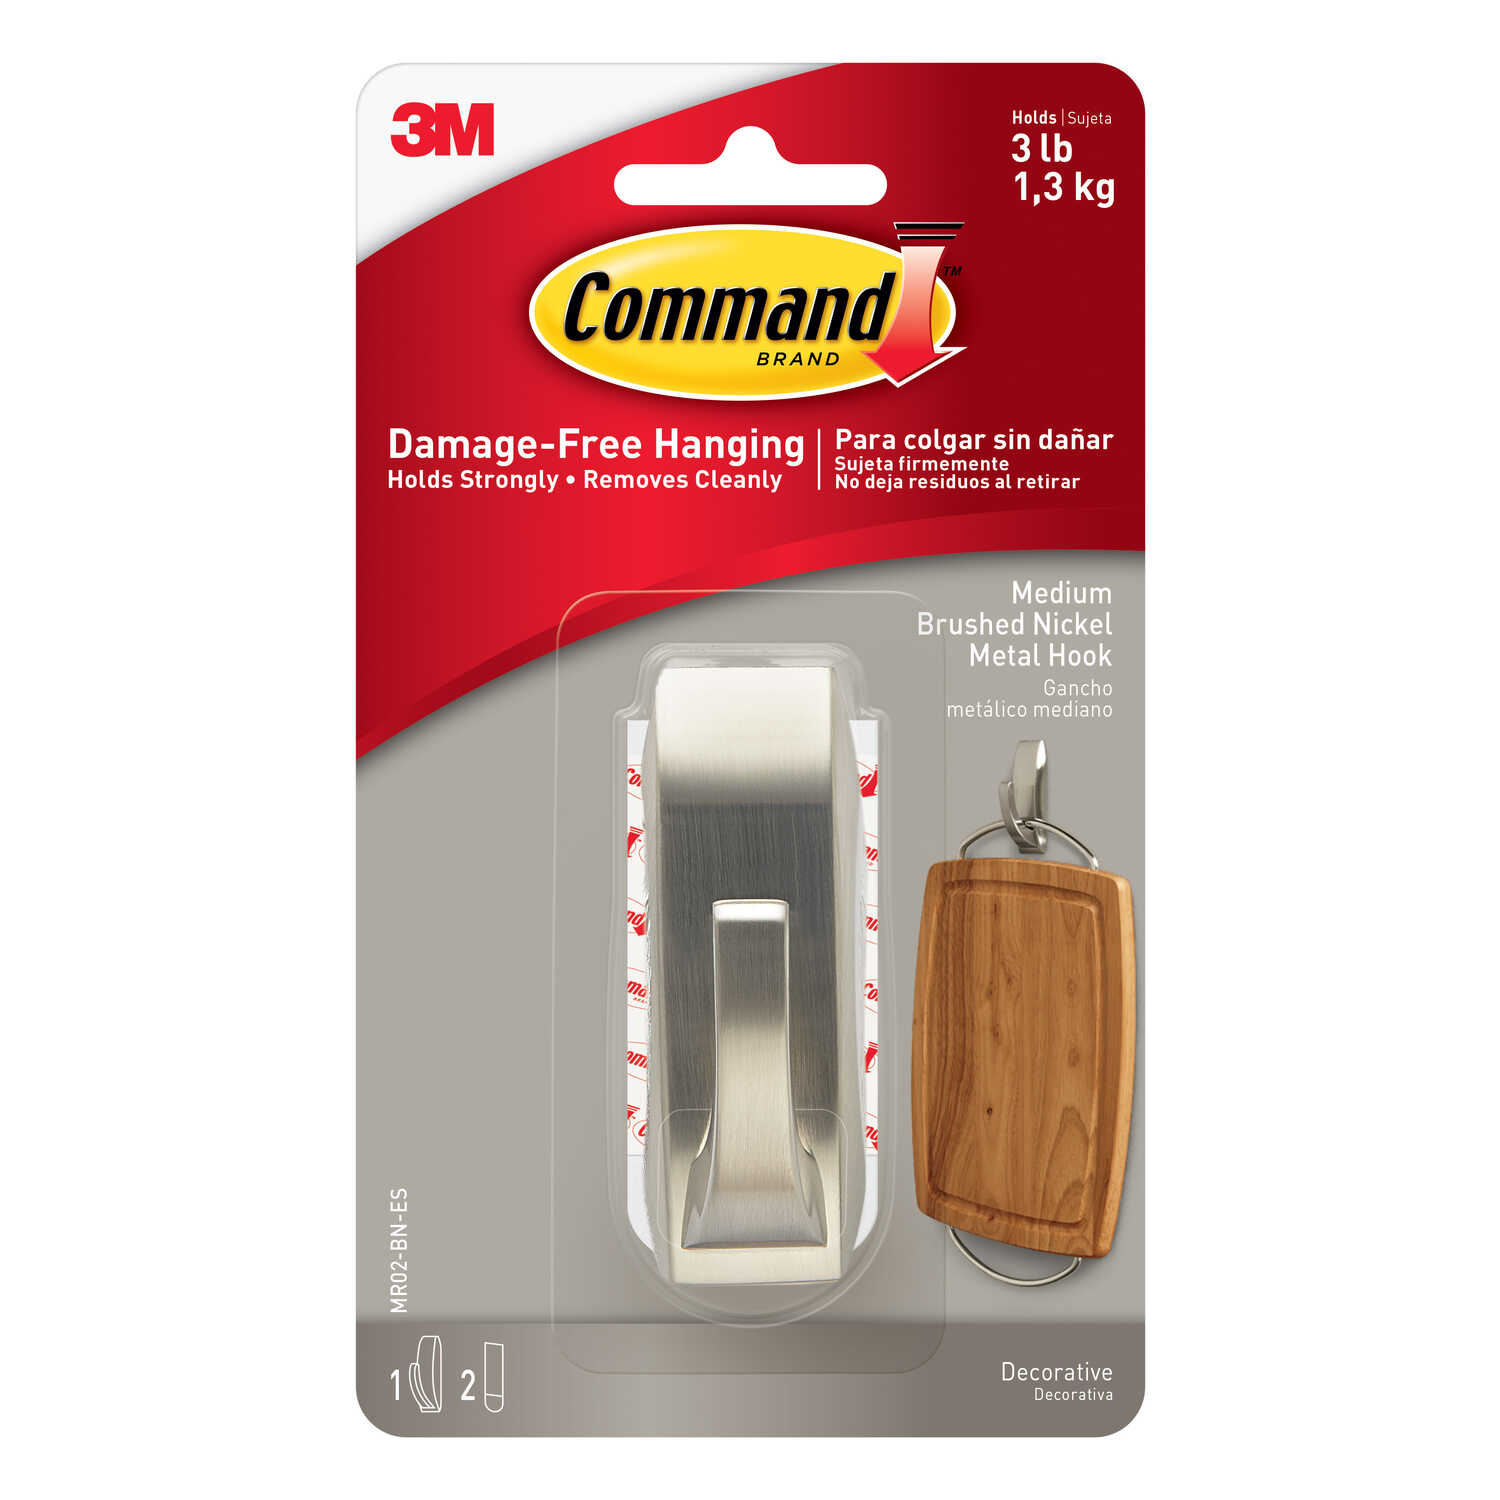 3M  Command  3-1/8 in. L Metal  Medium  Modern Reflections Bath  Coat/Hat Hook  3 lb. capacity 1 pk